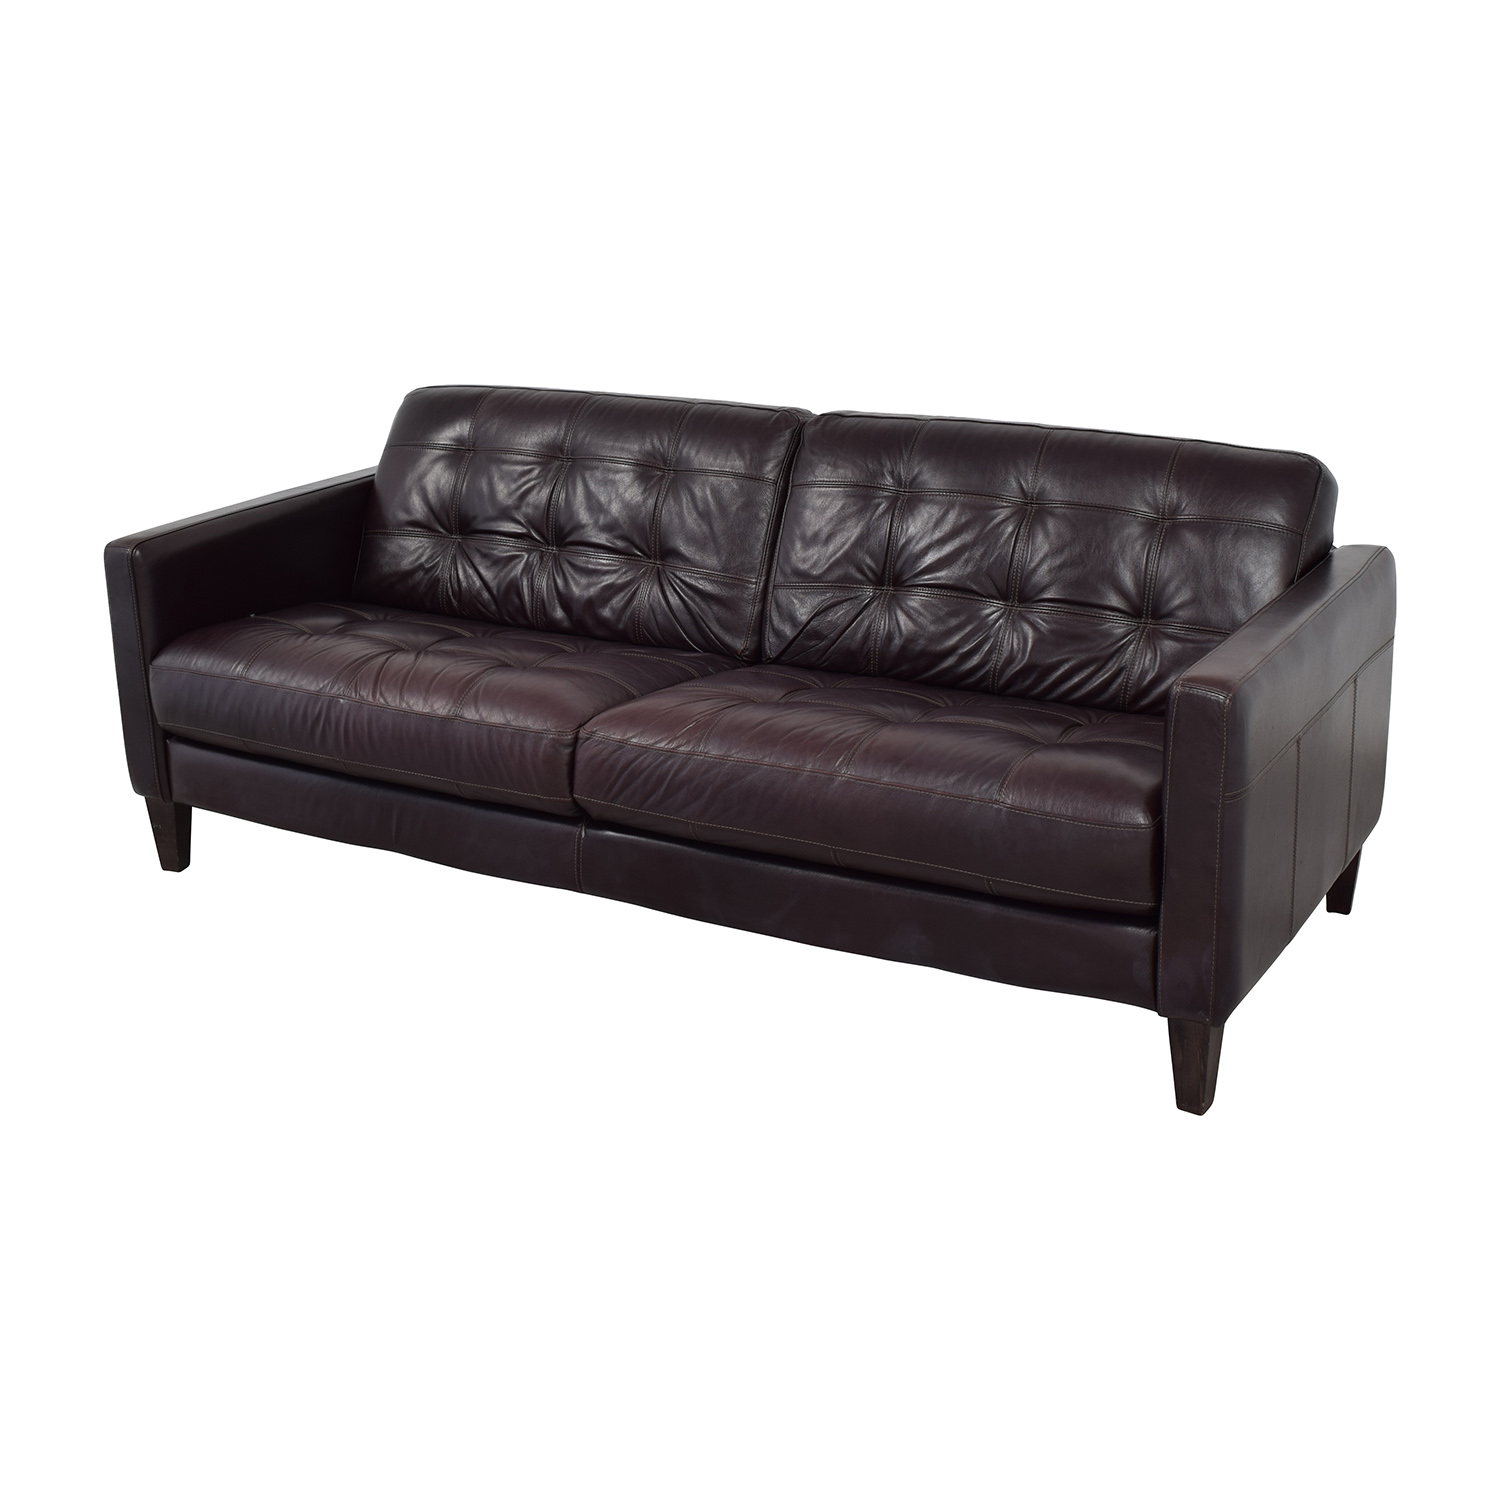 Macy's Macy's Milan Leather Sofa / Sofas